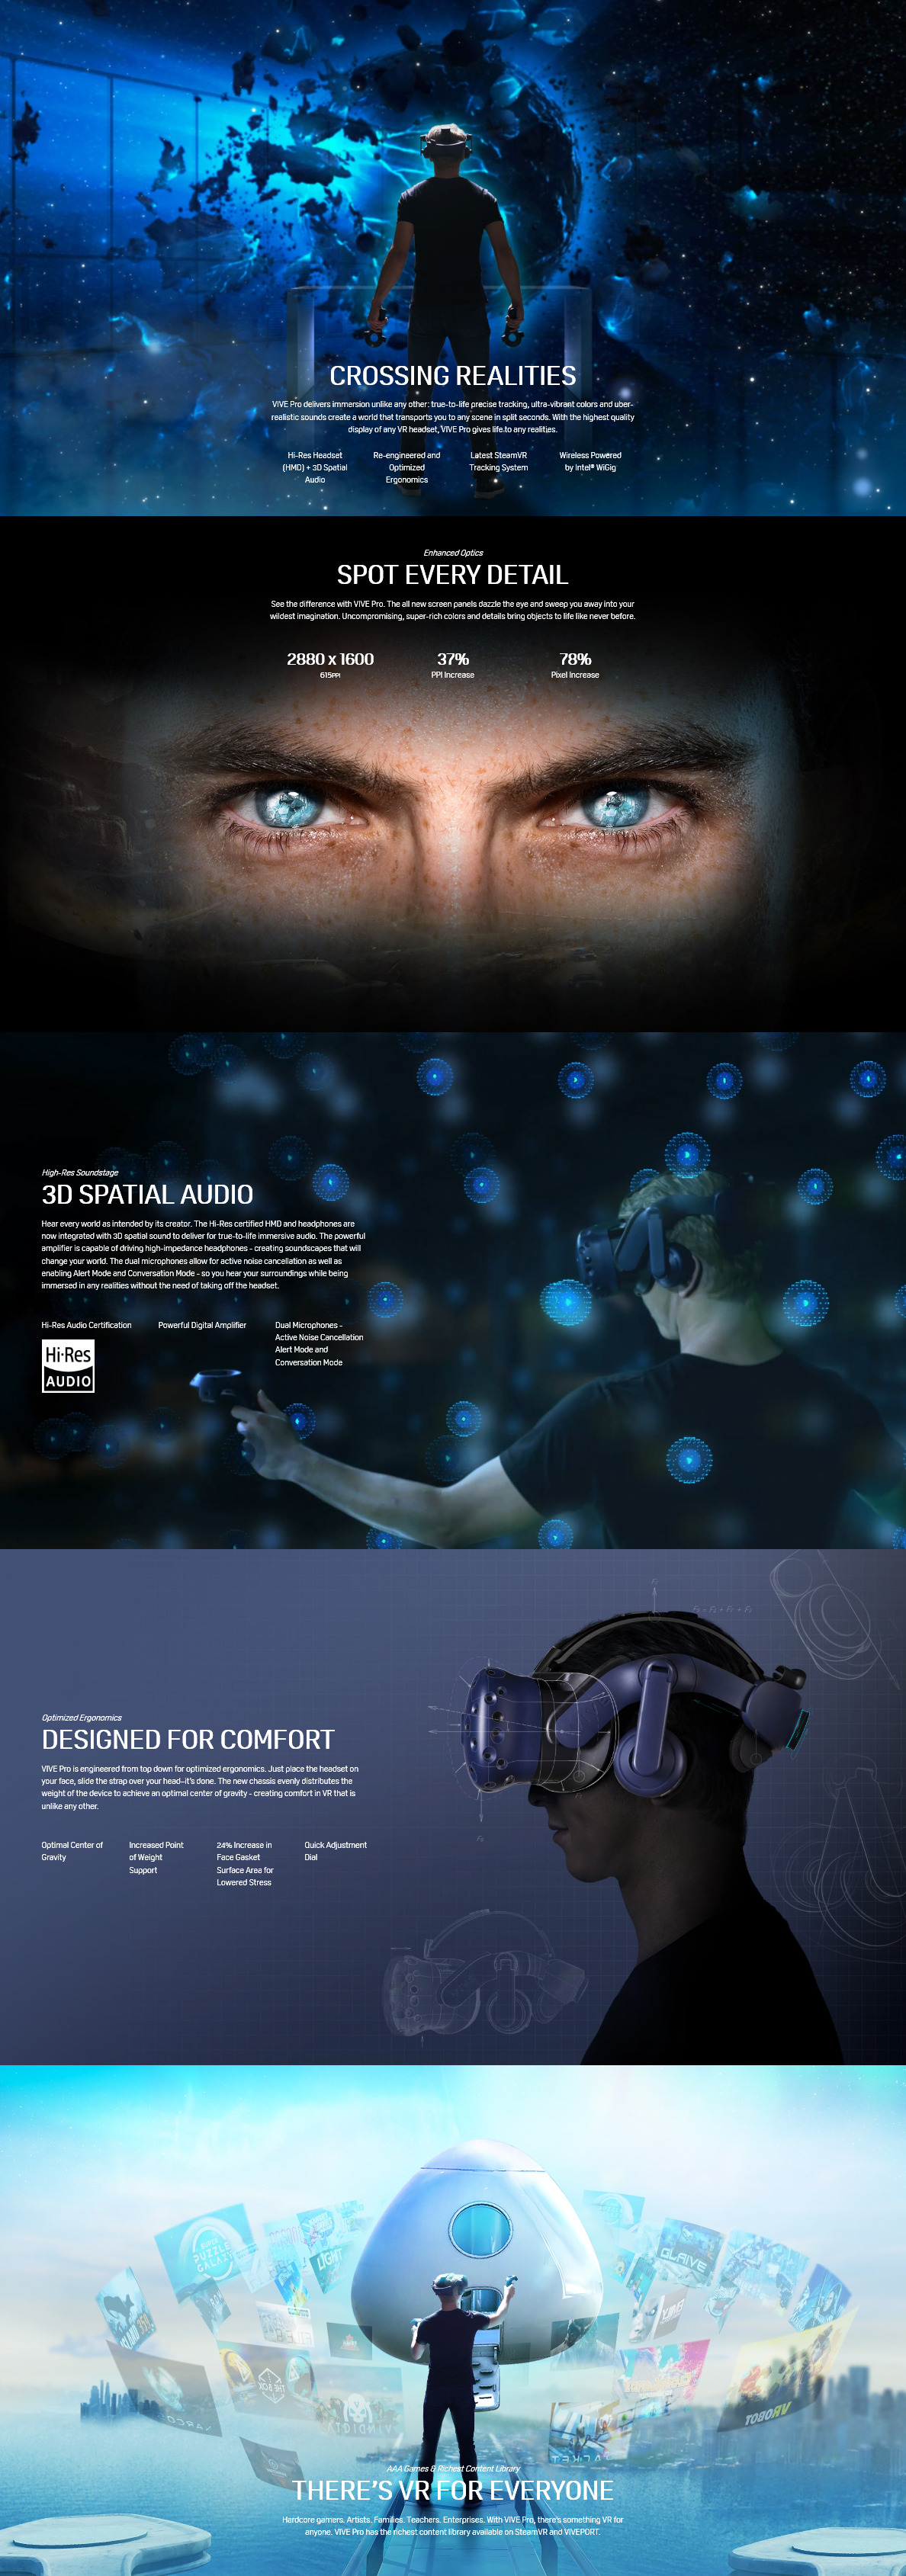 """Pro Only Launch Lipstick Swatches Photos: HTC VIVE Pro (HMD Only) 3.5"""" Dual AMOLED 90Hz VR H"""